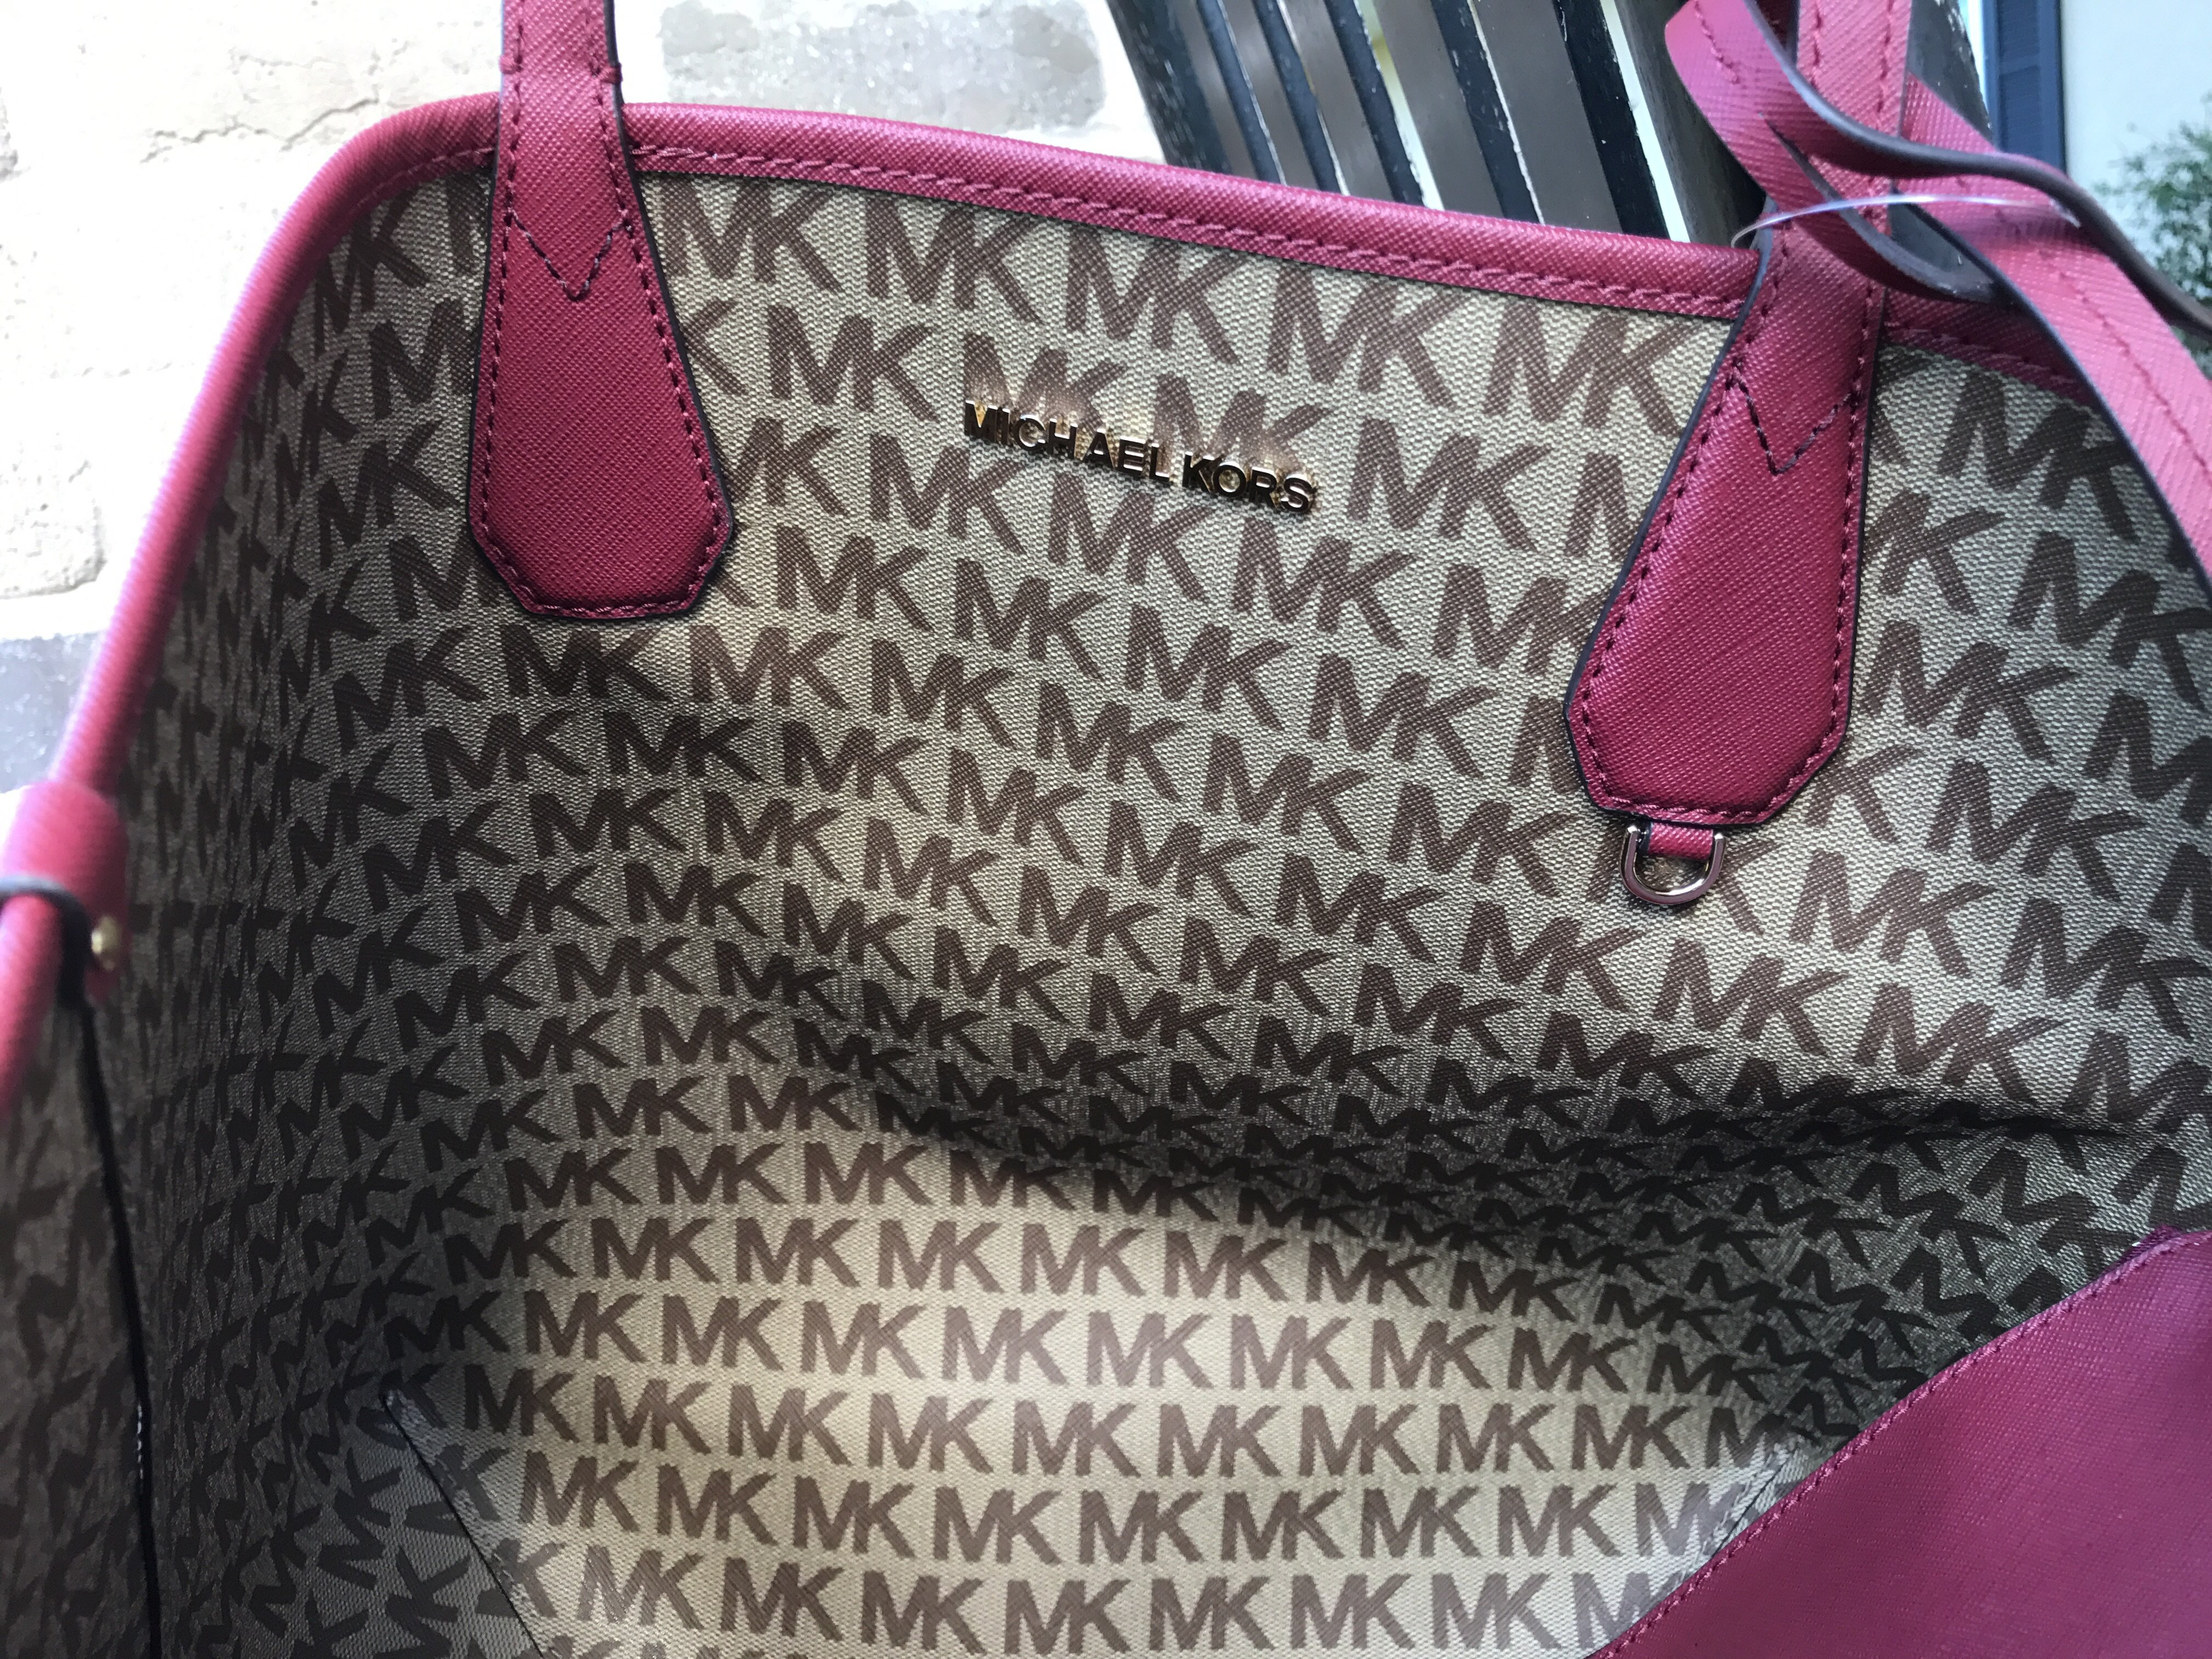 7a1313862d20 Michael Kors - NWT Michael Kors Candy Large Reversible Tote Brown Khaki  Signature Cherry Red - Walmart.com